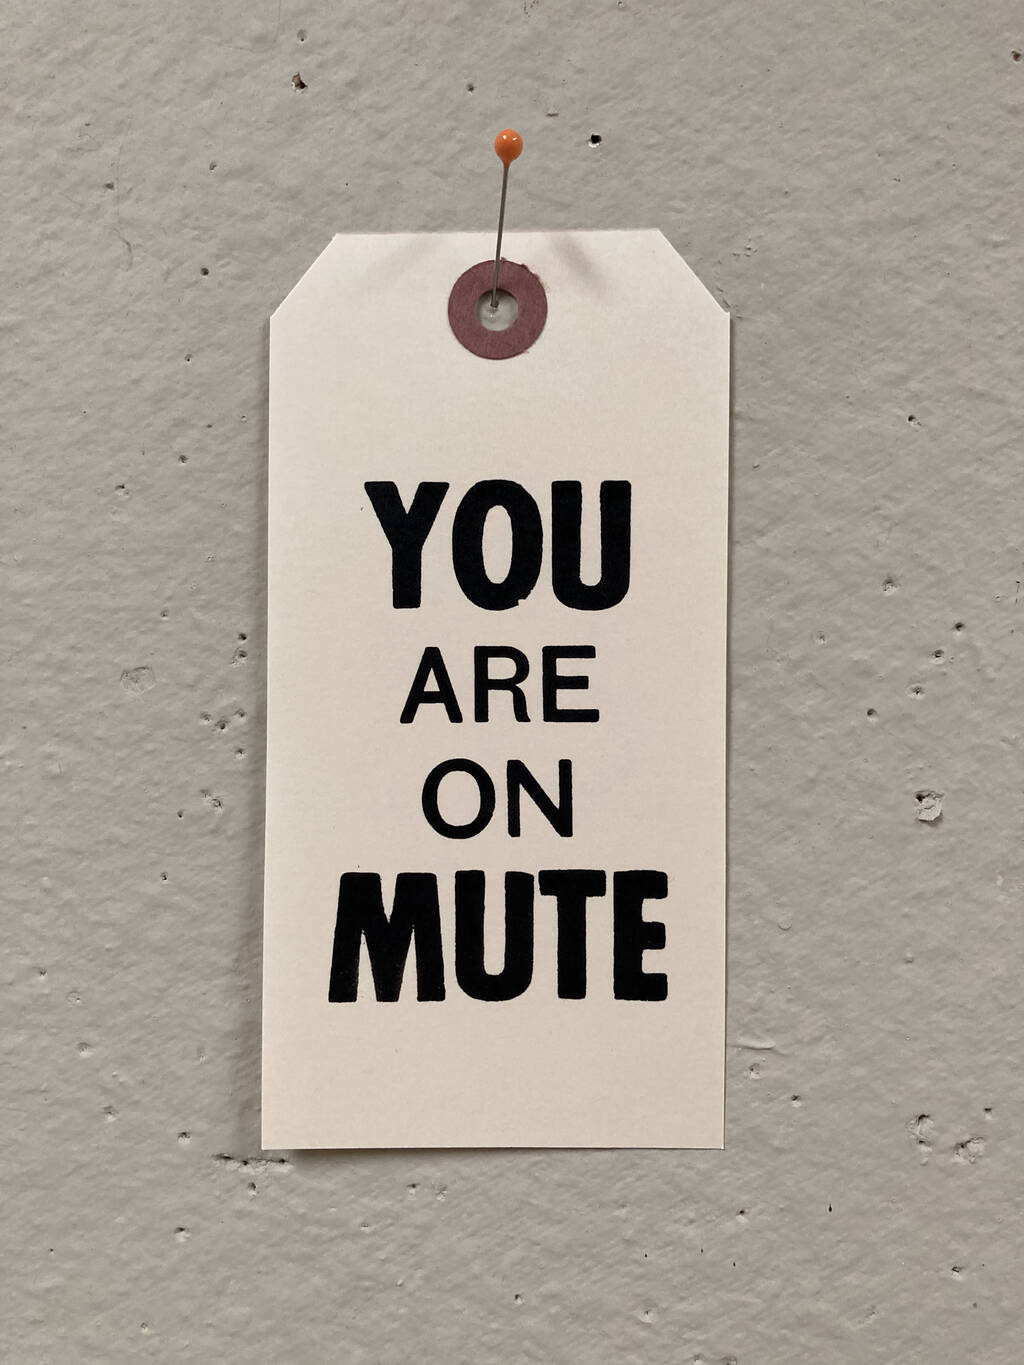 You Are On Mute, printed on a number 6 shipping tag in black ink, hanging on a bulletin board.